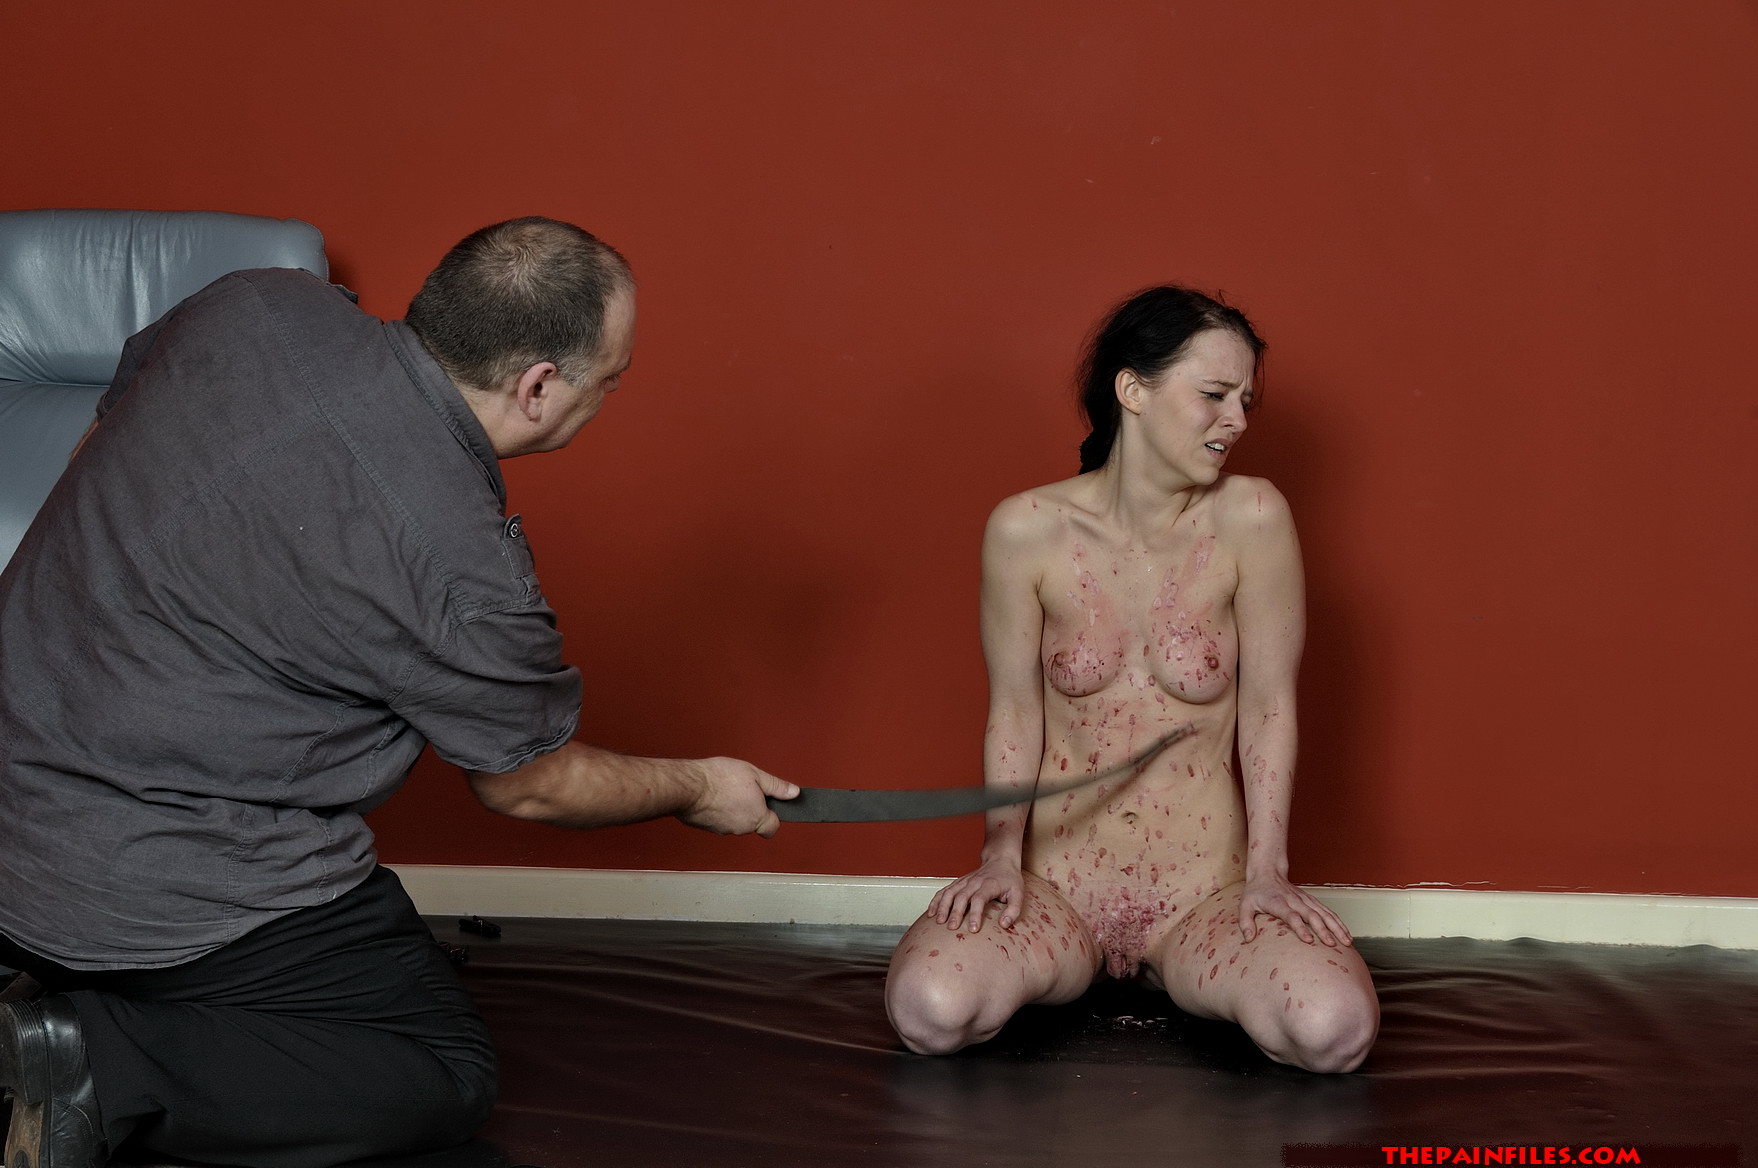 Sadistic bdsm sub covered with clover clamps 3